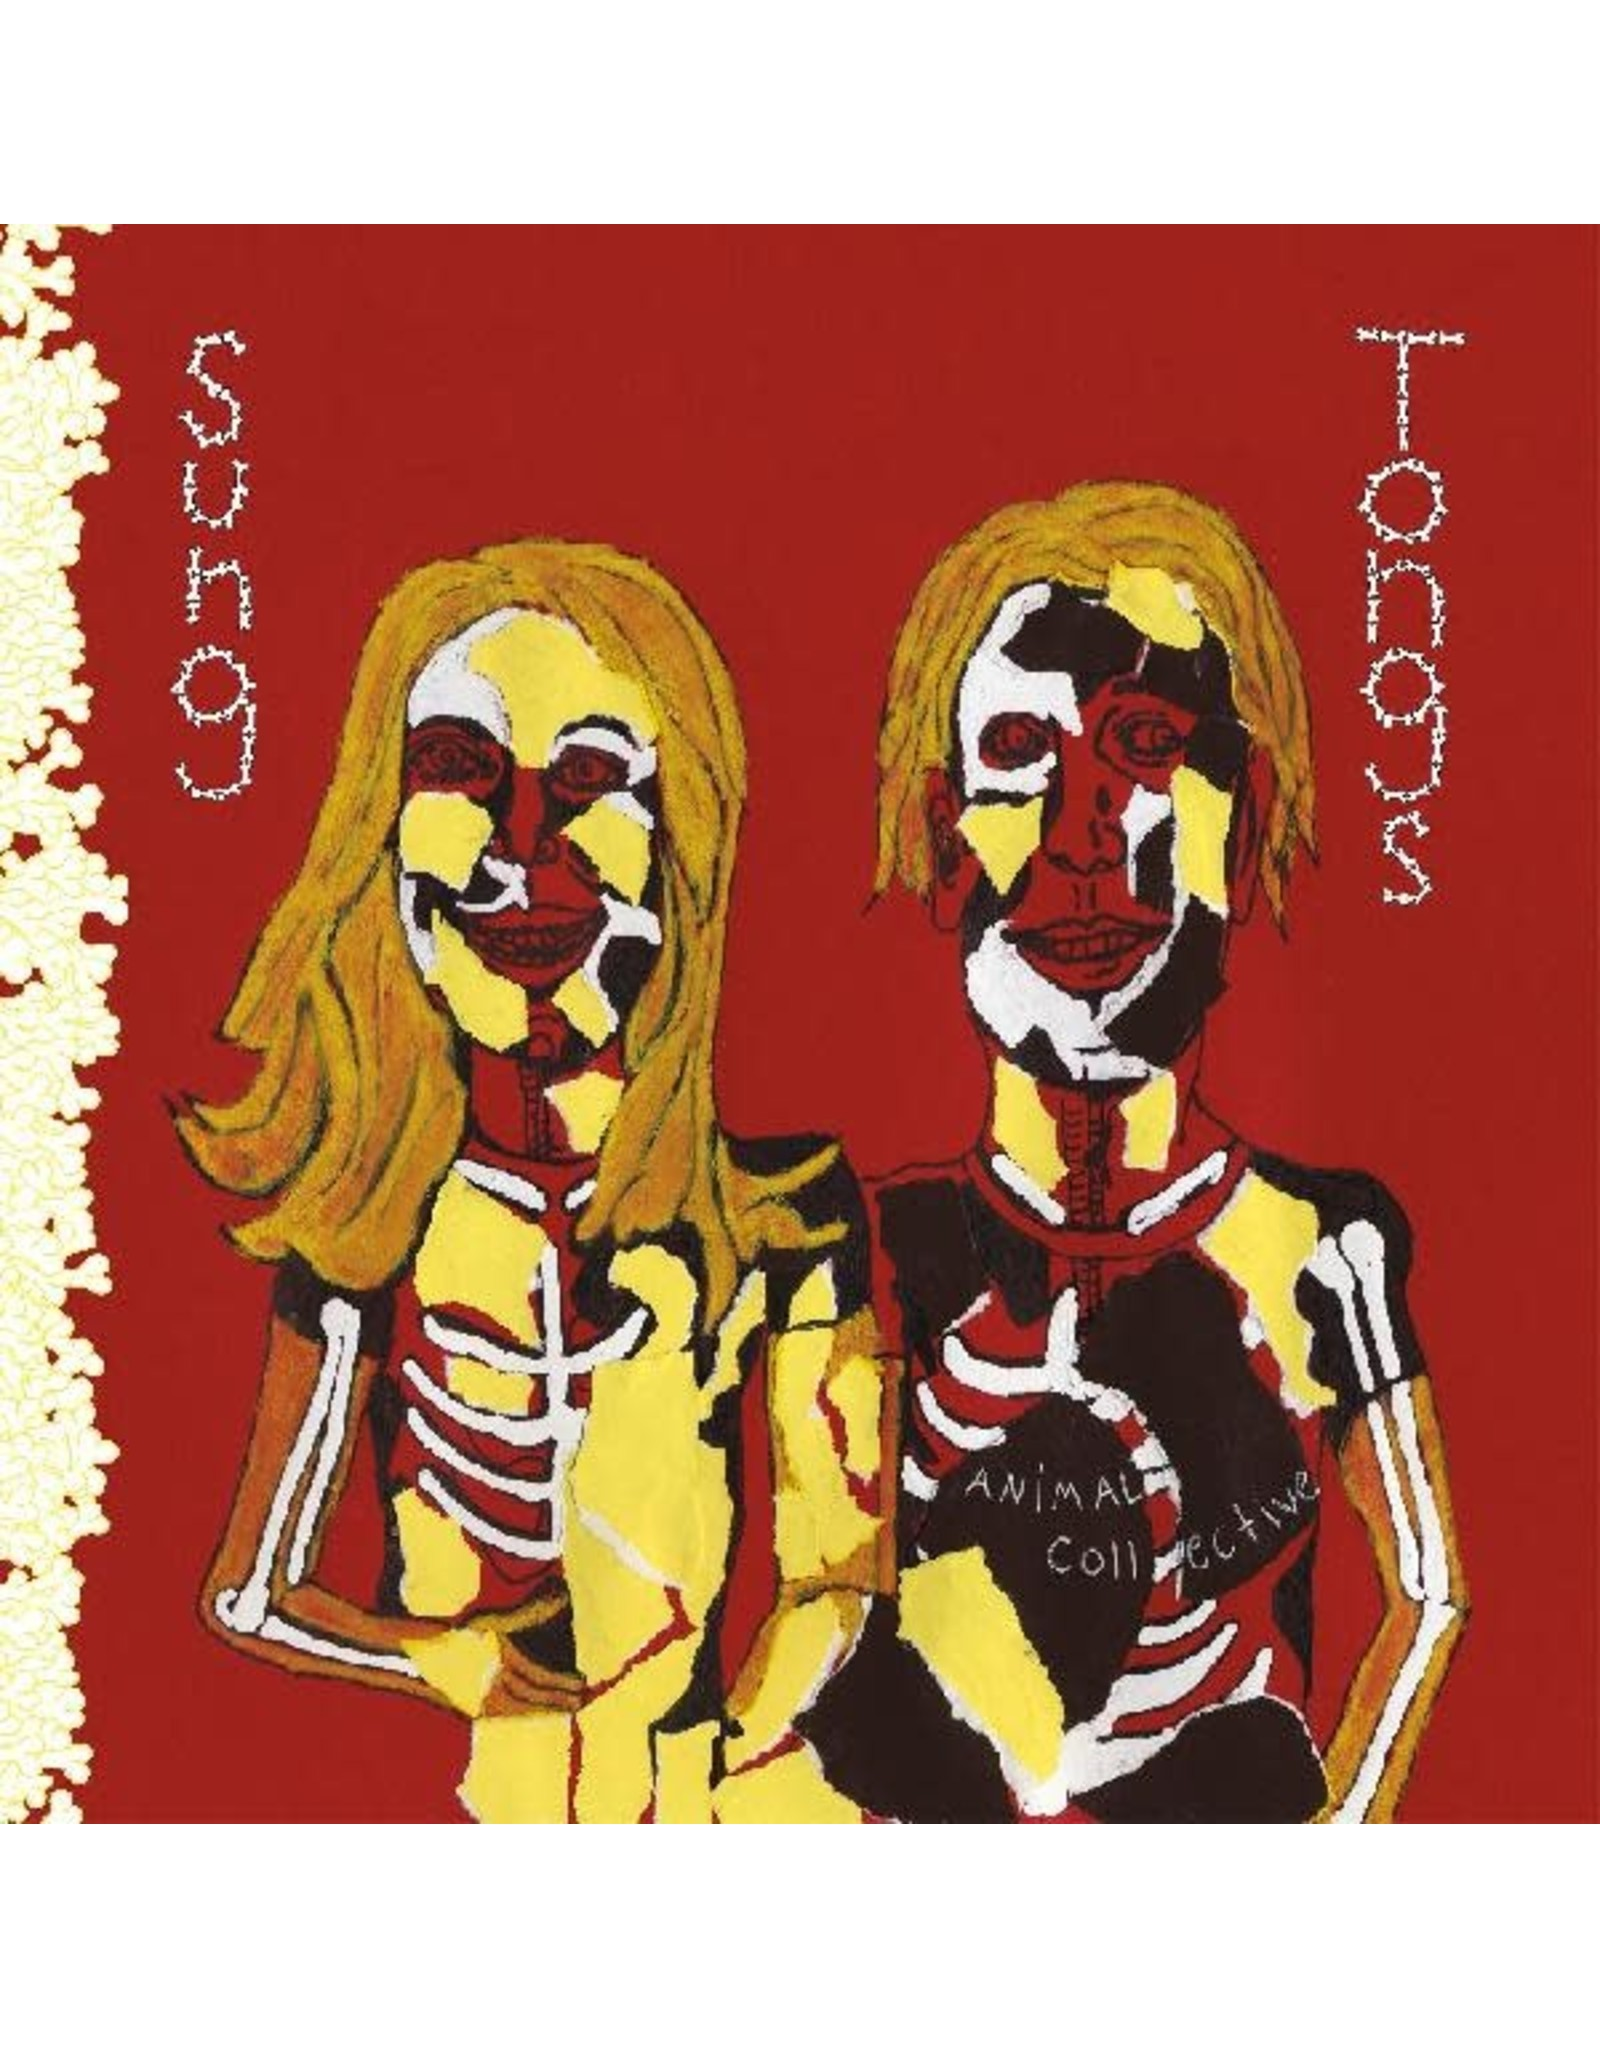 Domino Animal Collective: Sung Tongs LP